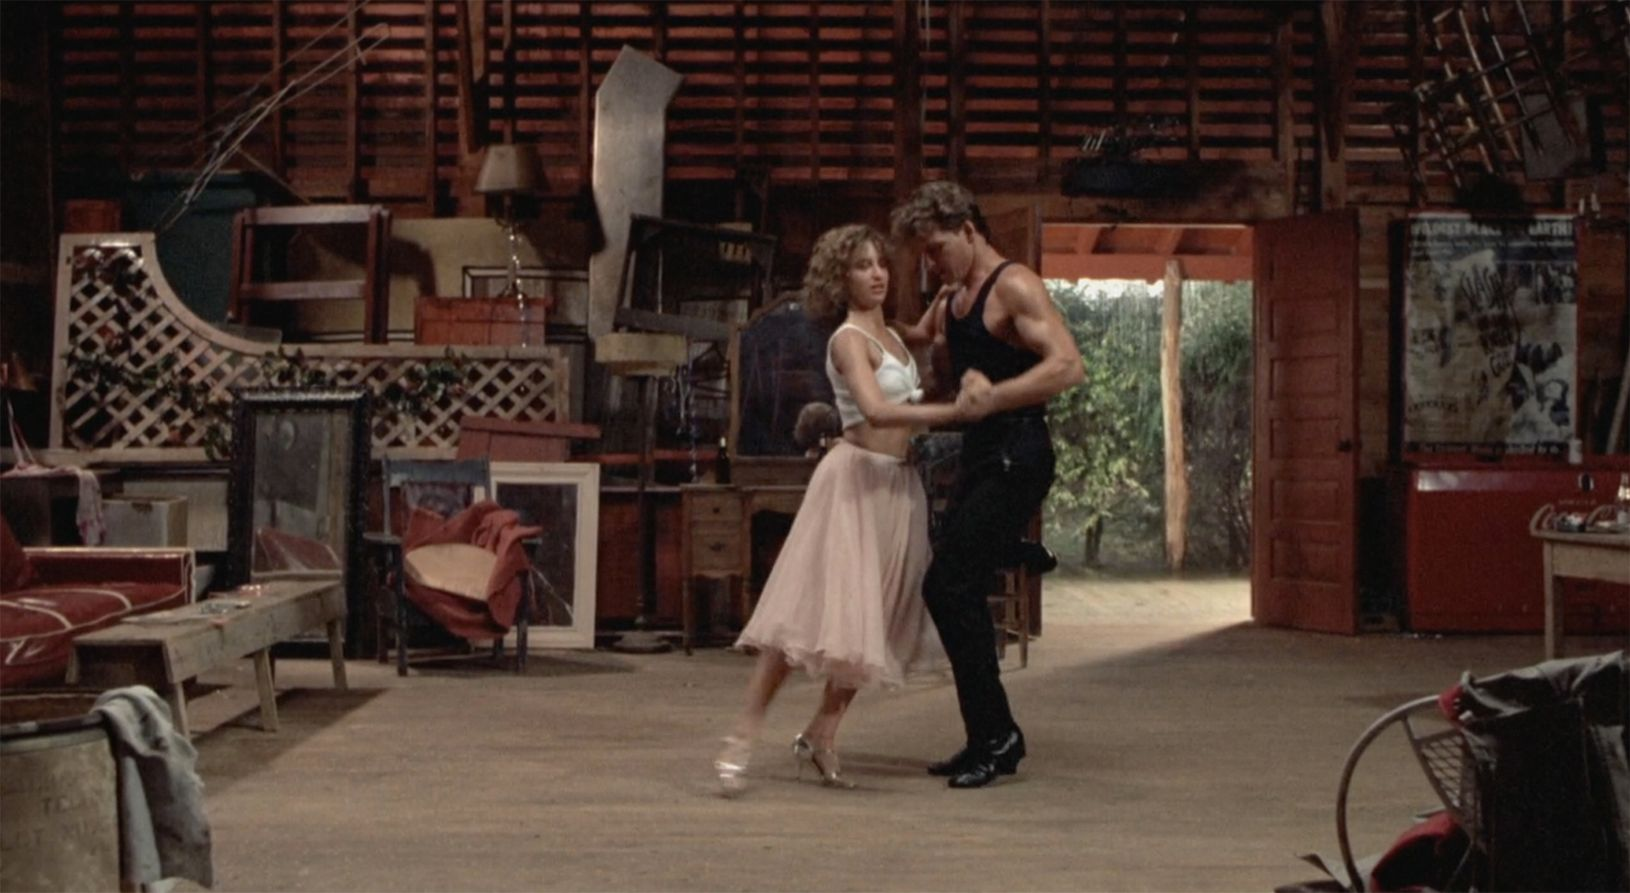 Dirty dancing fashion inspiration 3